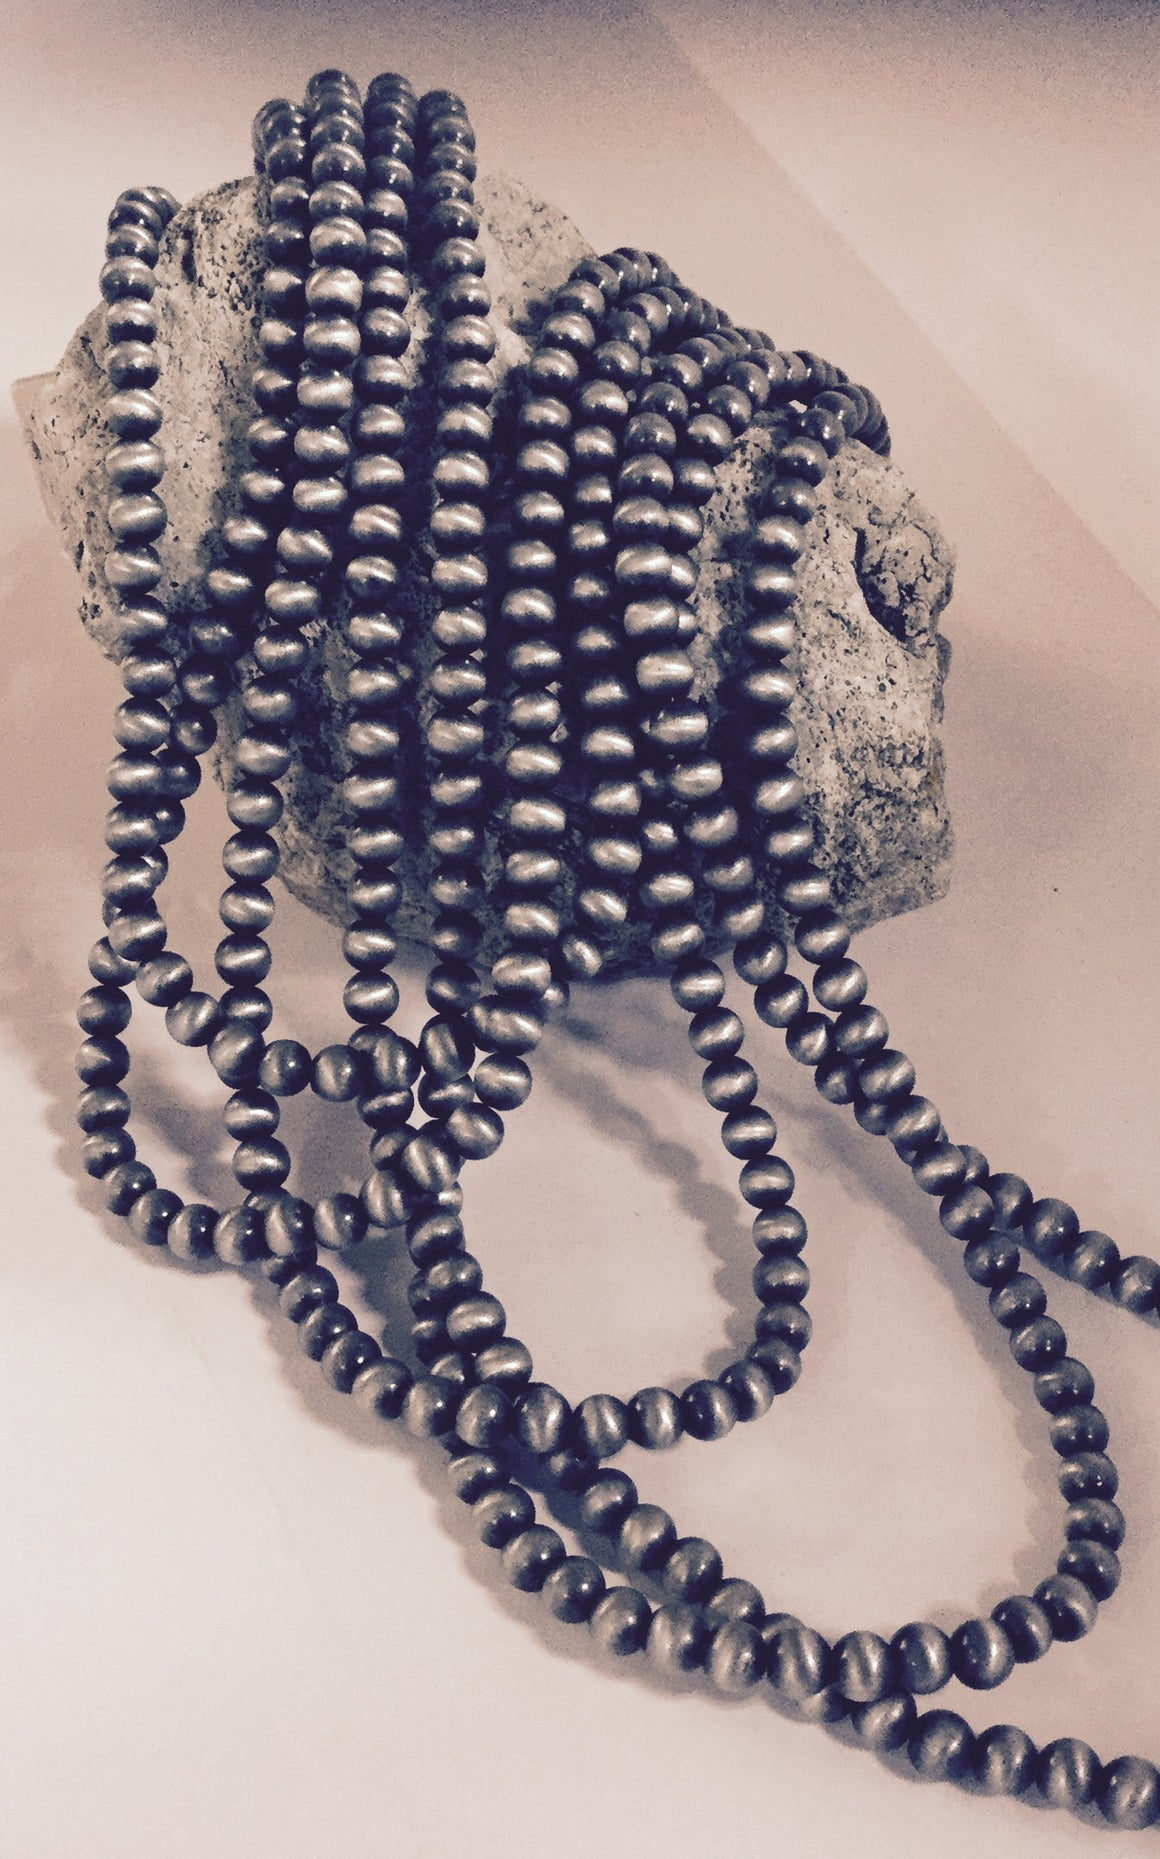 Five Strand Silver Beaded Necklace